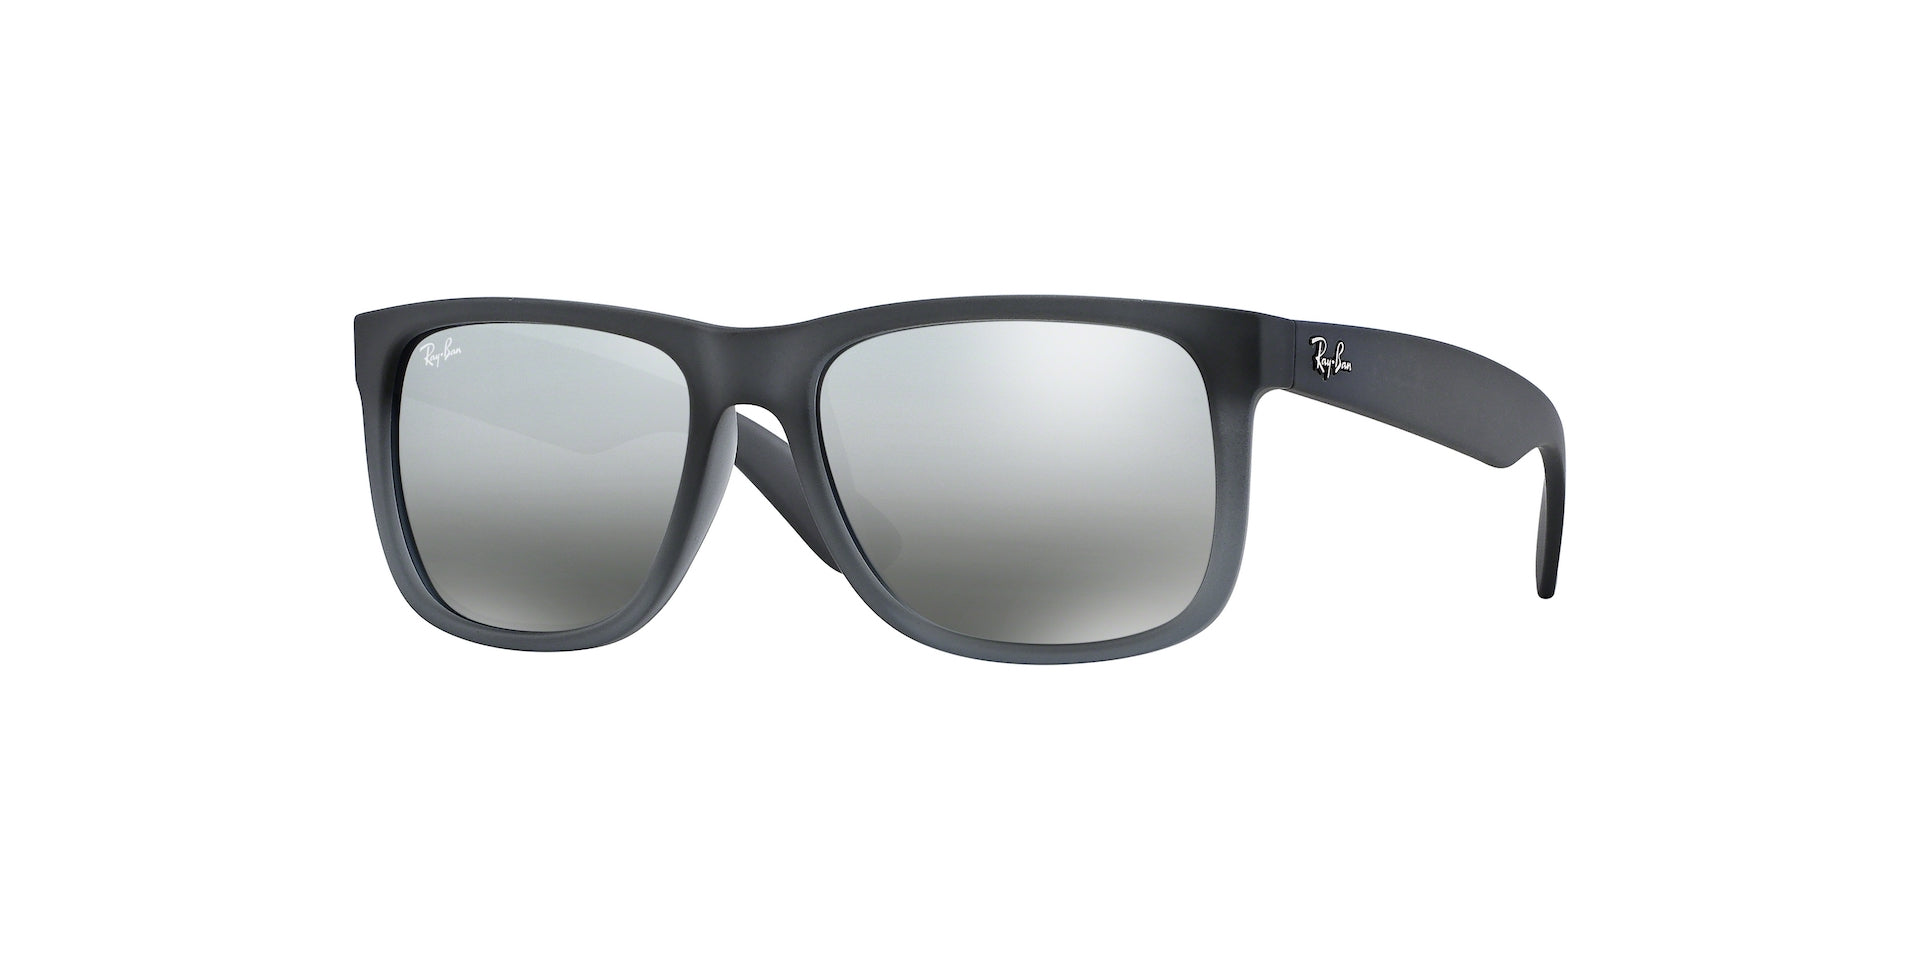 37a058fcfd0 Ray-Ban - Vision Works Optometrists